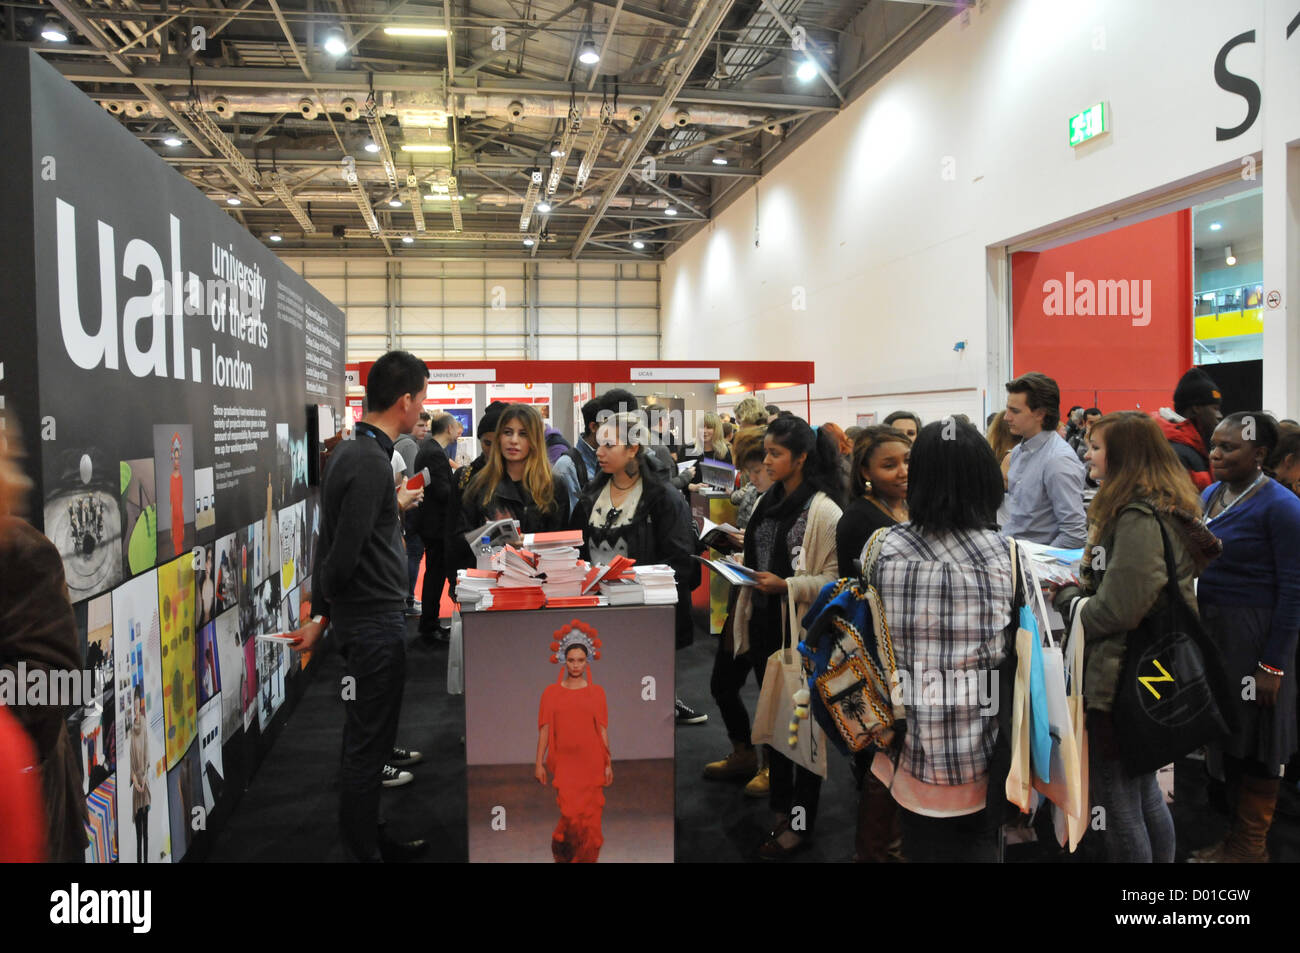 Excel, London, UK. 14th November 2012. Sixth form and FE students visit the stands to get information about Degree - Stock Image